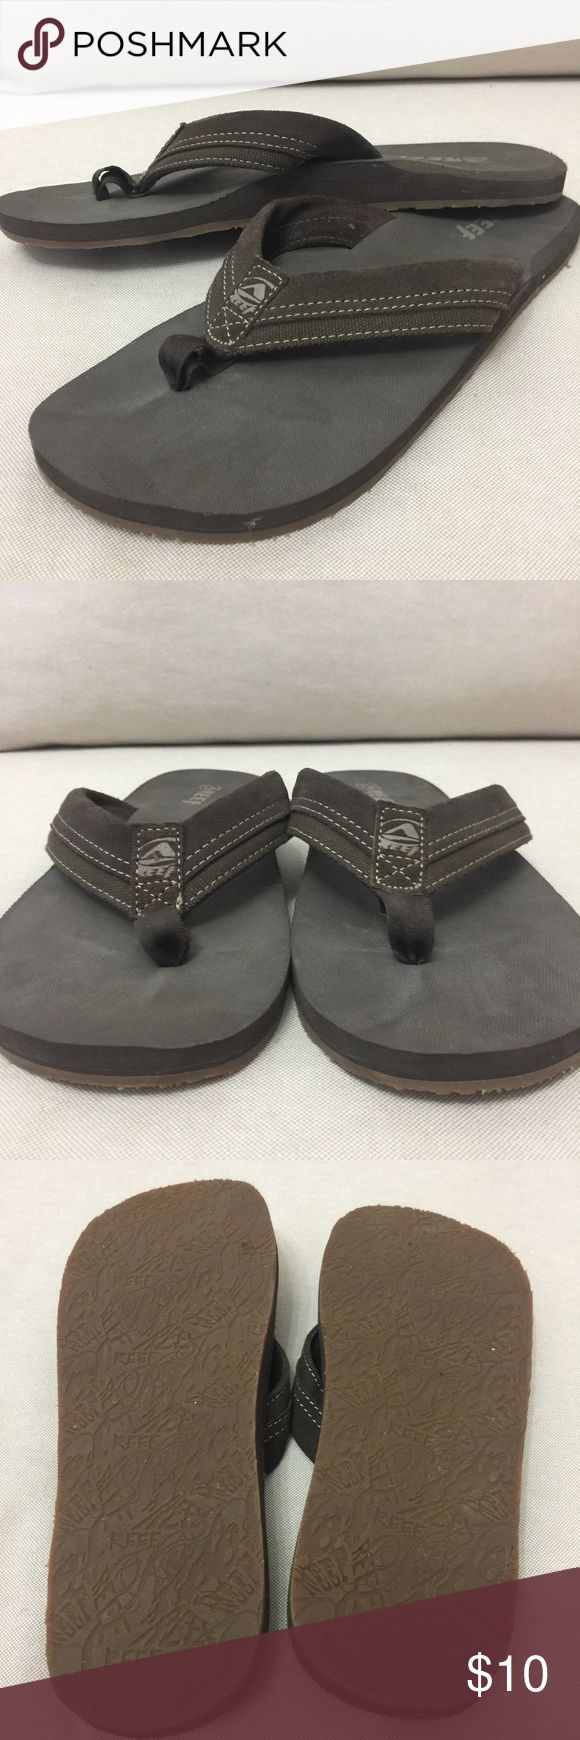 Mens Reef flip flops Very little signs of wear GREAT Condition Reef Shoes Sandals & Flip-Flops